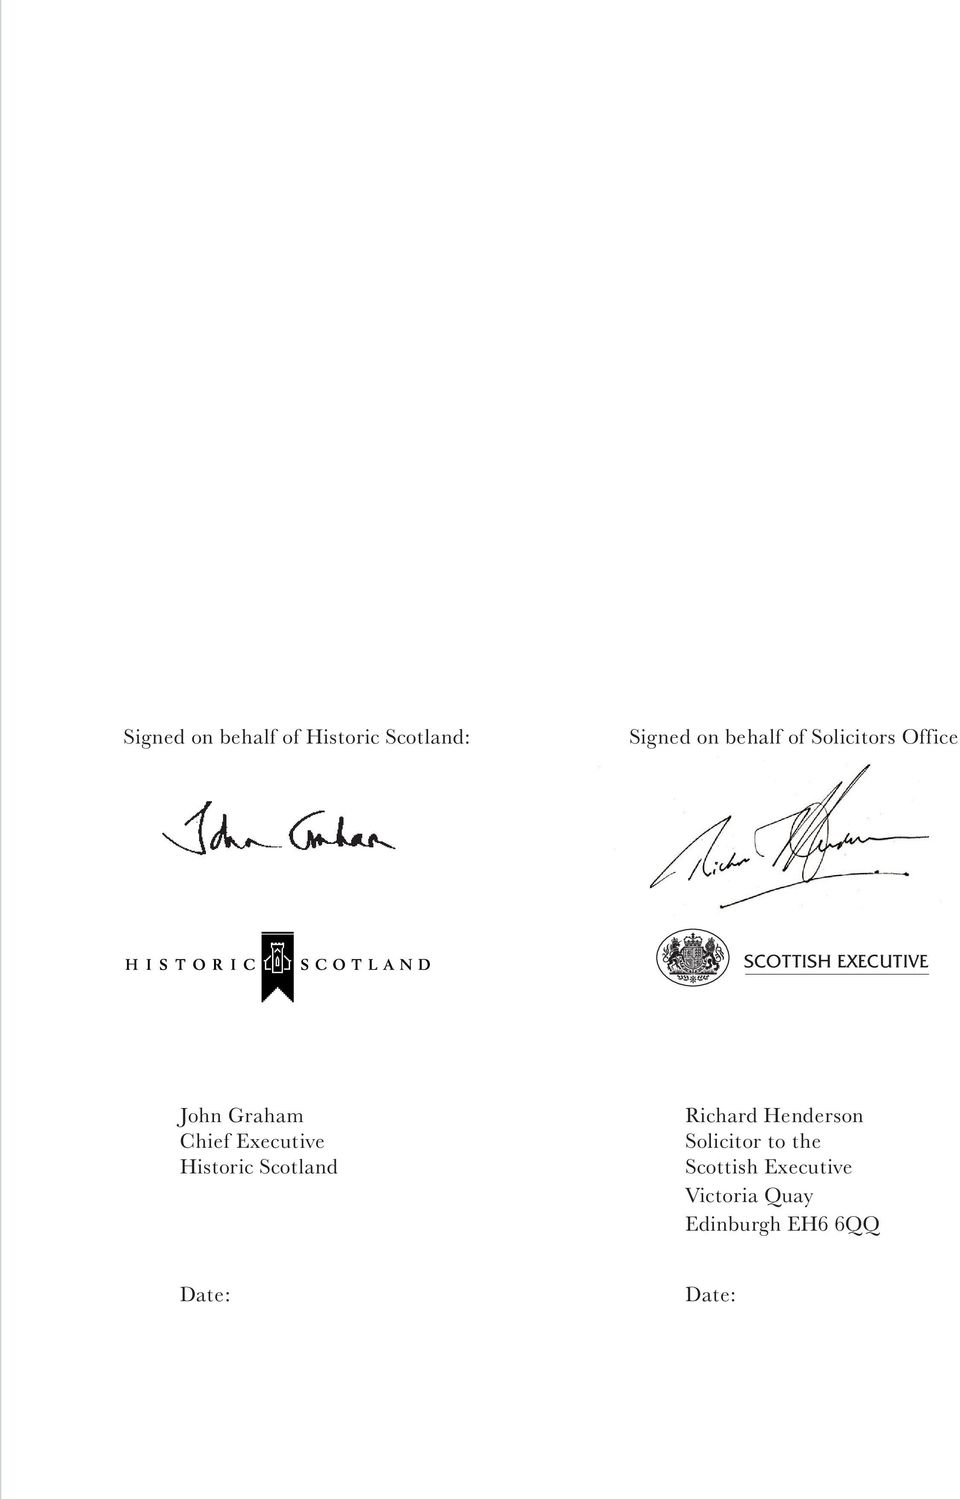 Executive Historic Scotland Richard Henderson Solicitor to